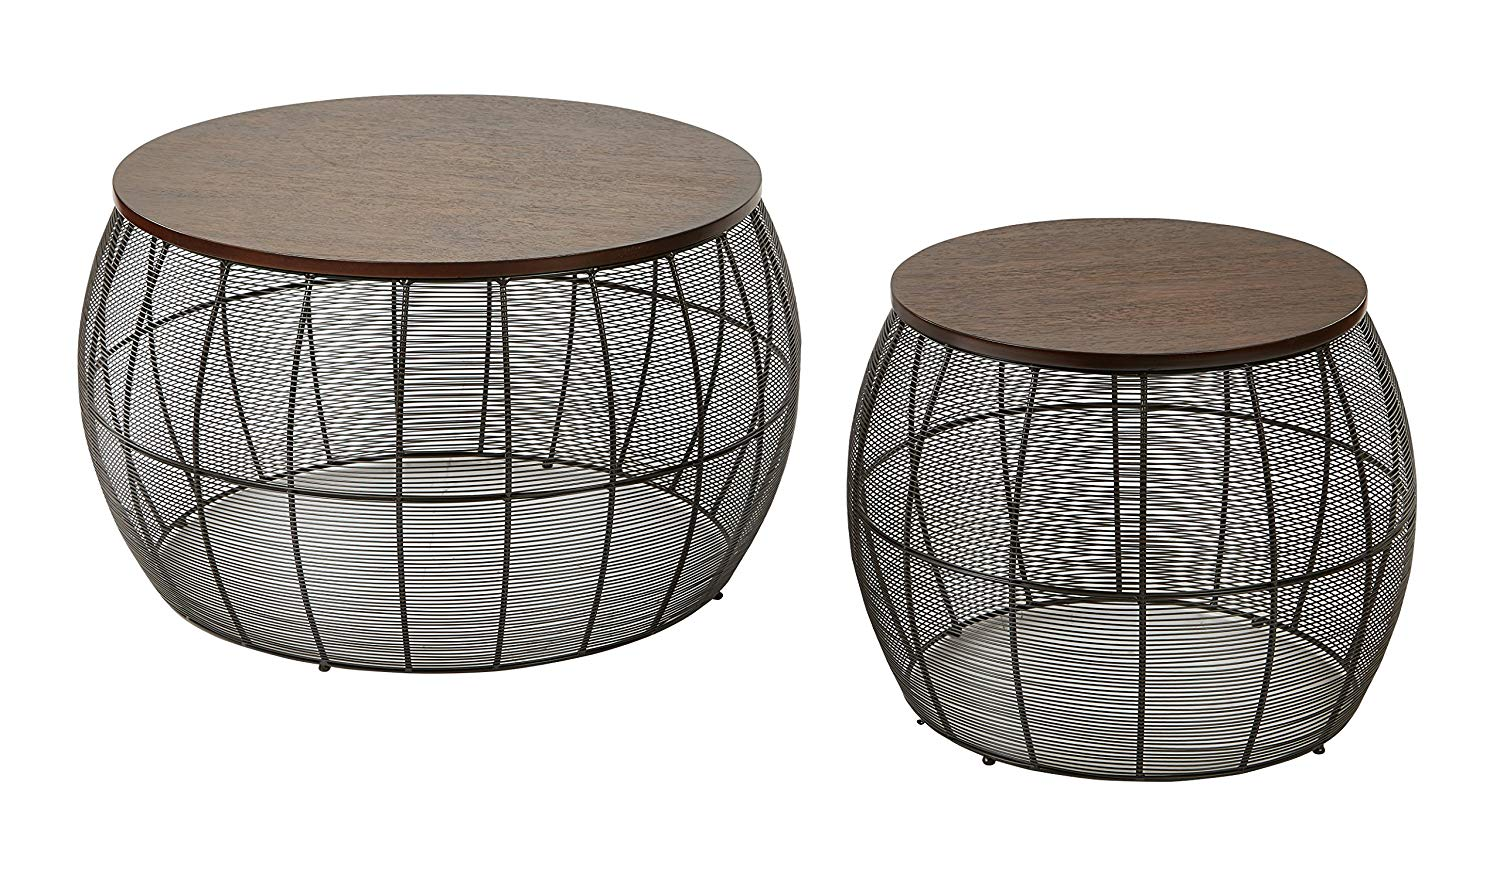 office star piece camden round metal accent tables wood and table with top espresso kitchen dining ikea long outdoor chair side antique pine end modern coffee marble acrylic